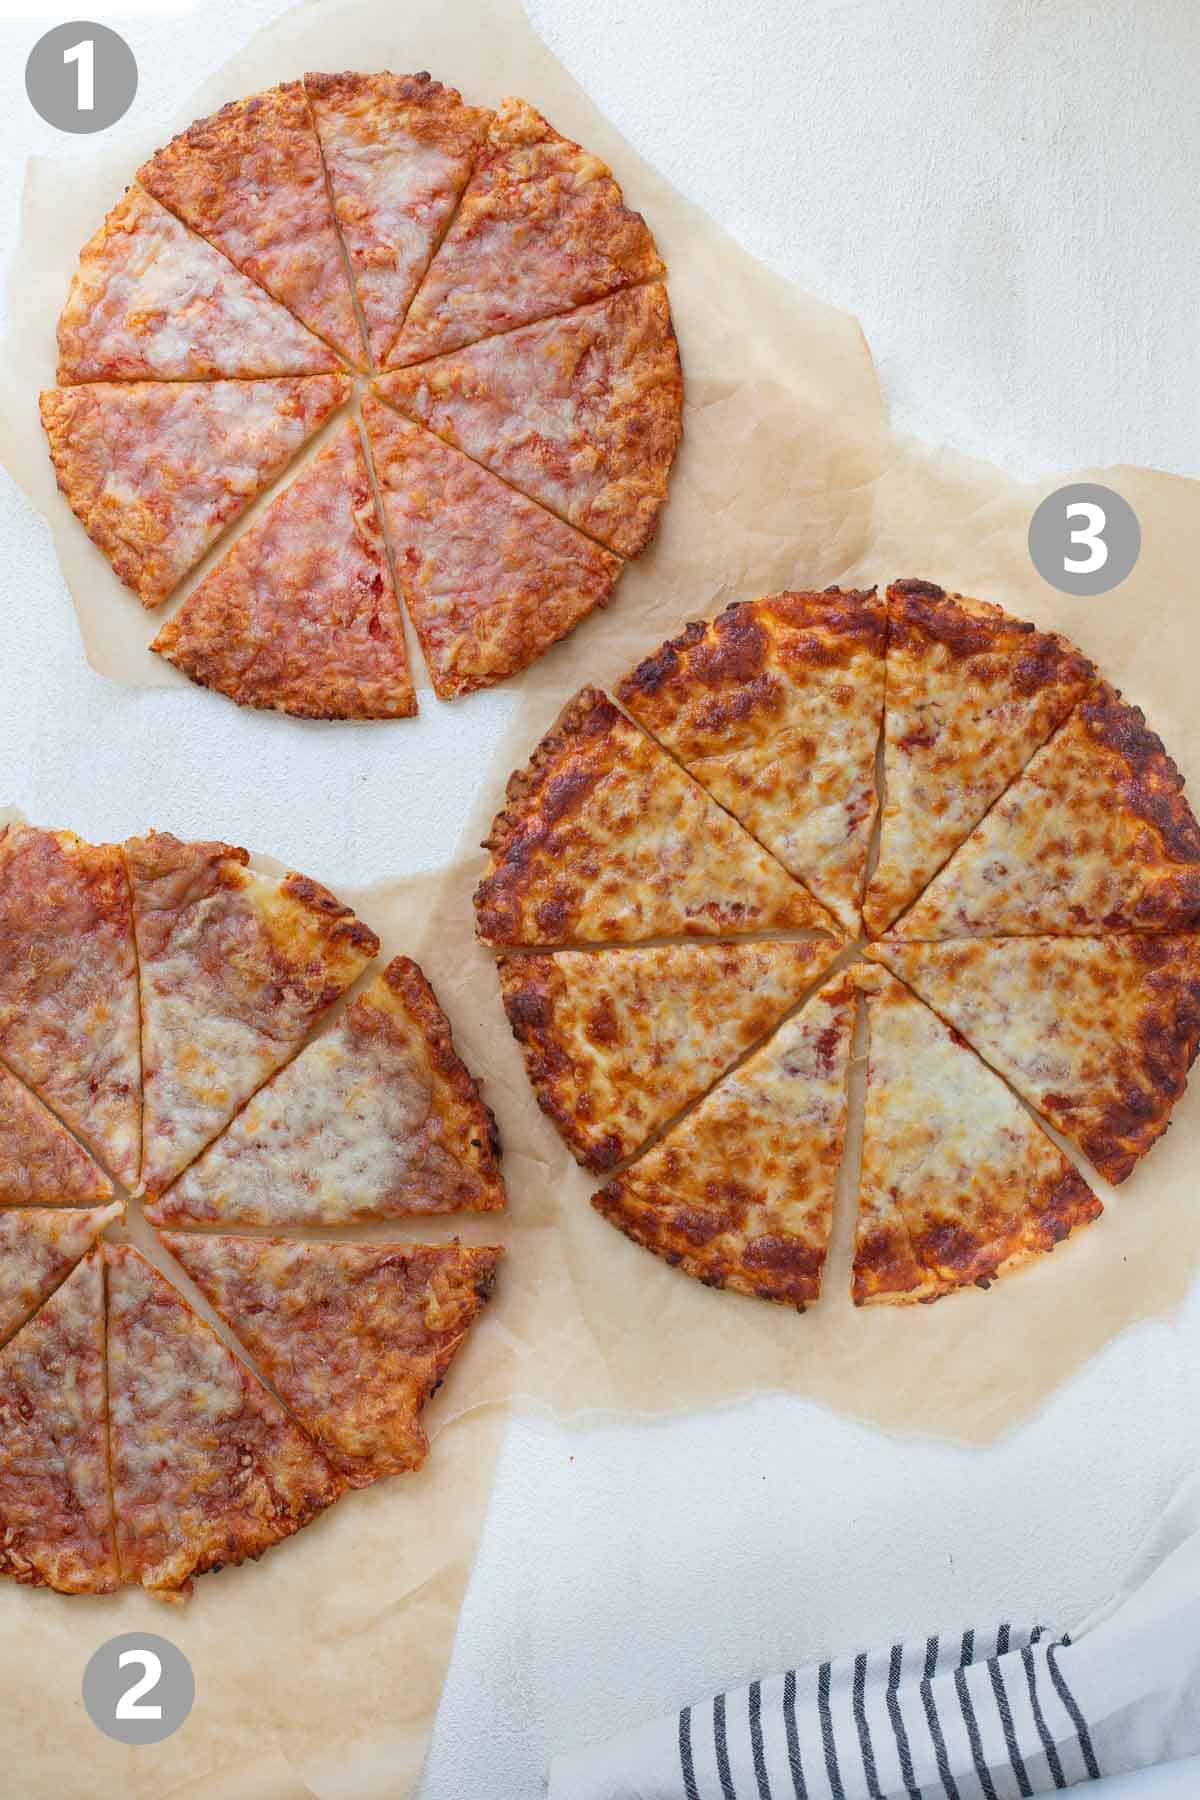 3 types of gluten-free pizza for taste test